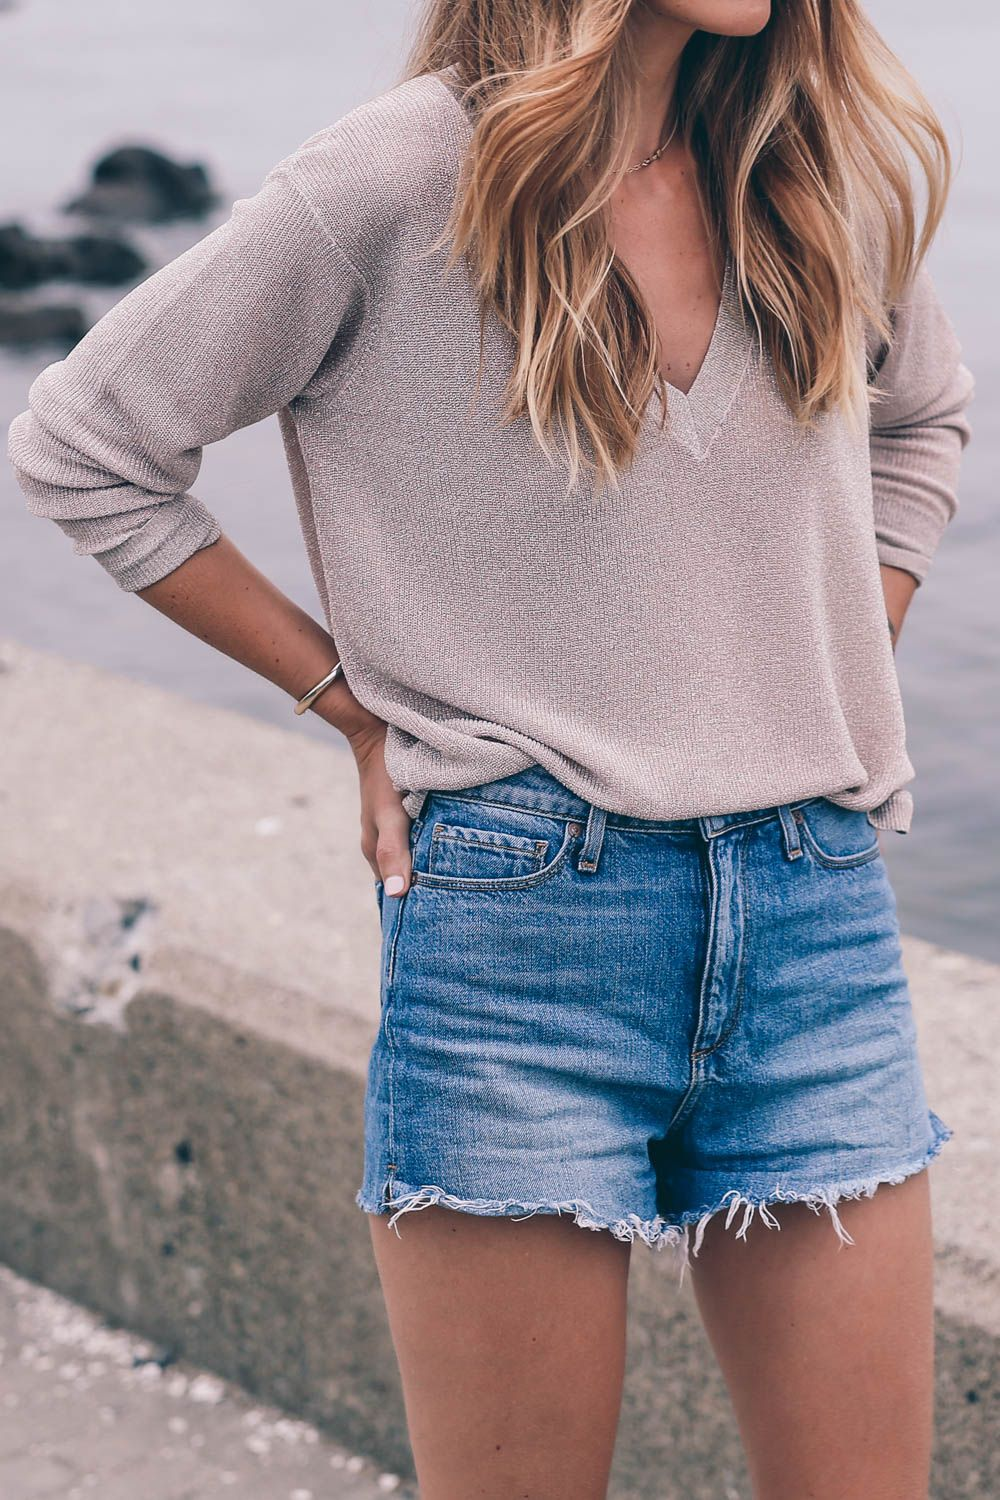 Reiss metallic sweater paige cutoffs suede mules  Spring outfits